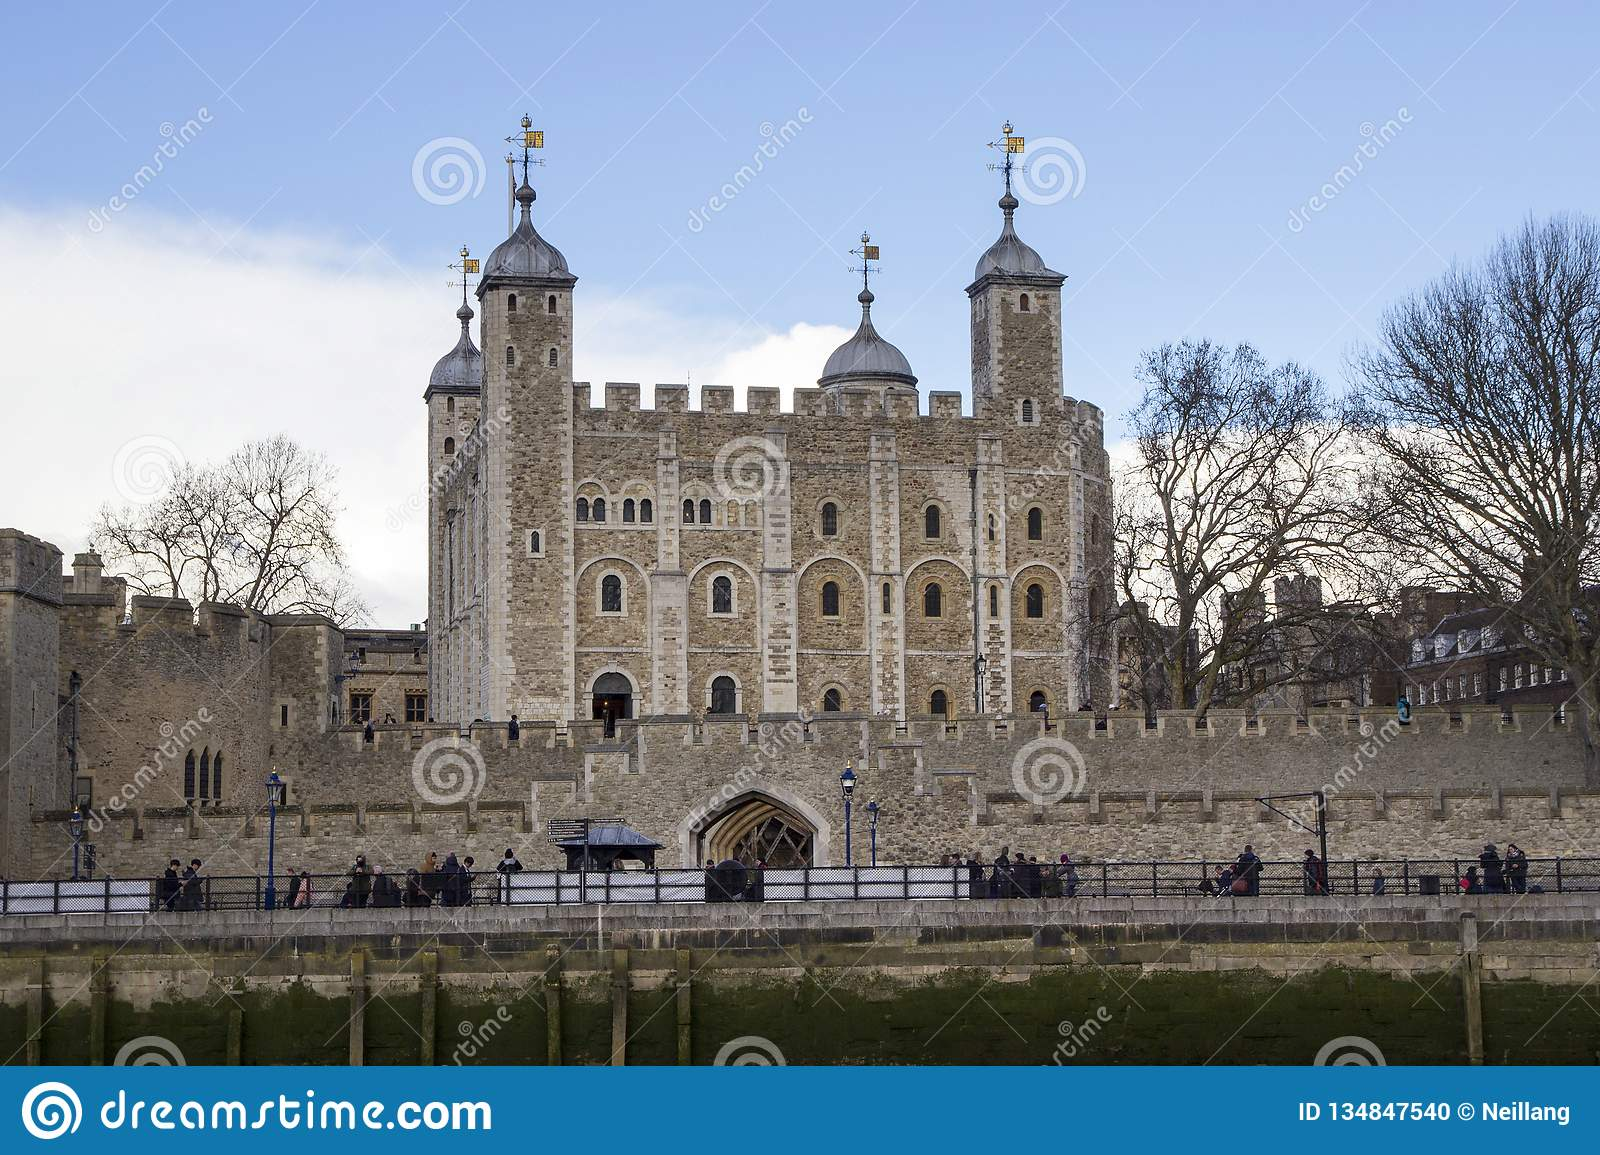 London cityscape across the River Thames with a view of the Tower of London, London, England, UK, May